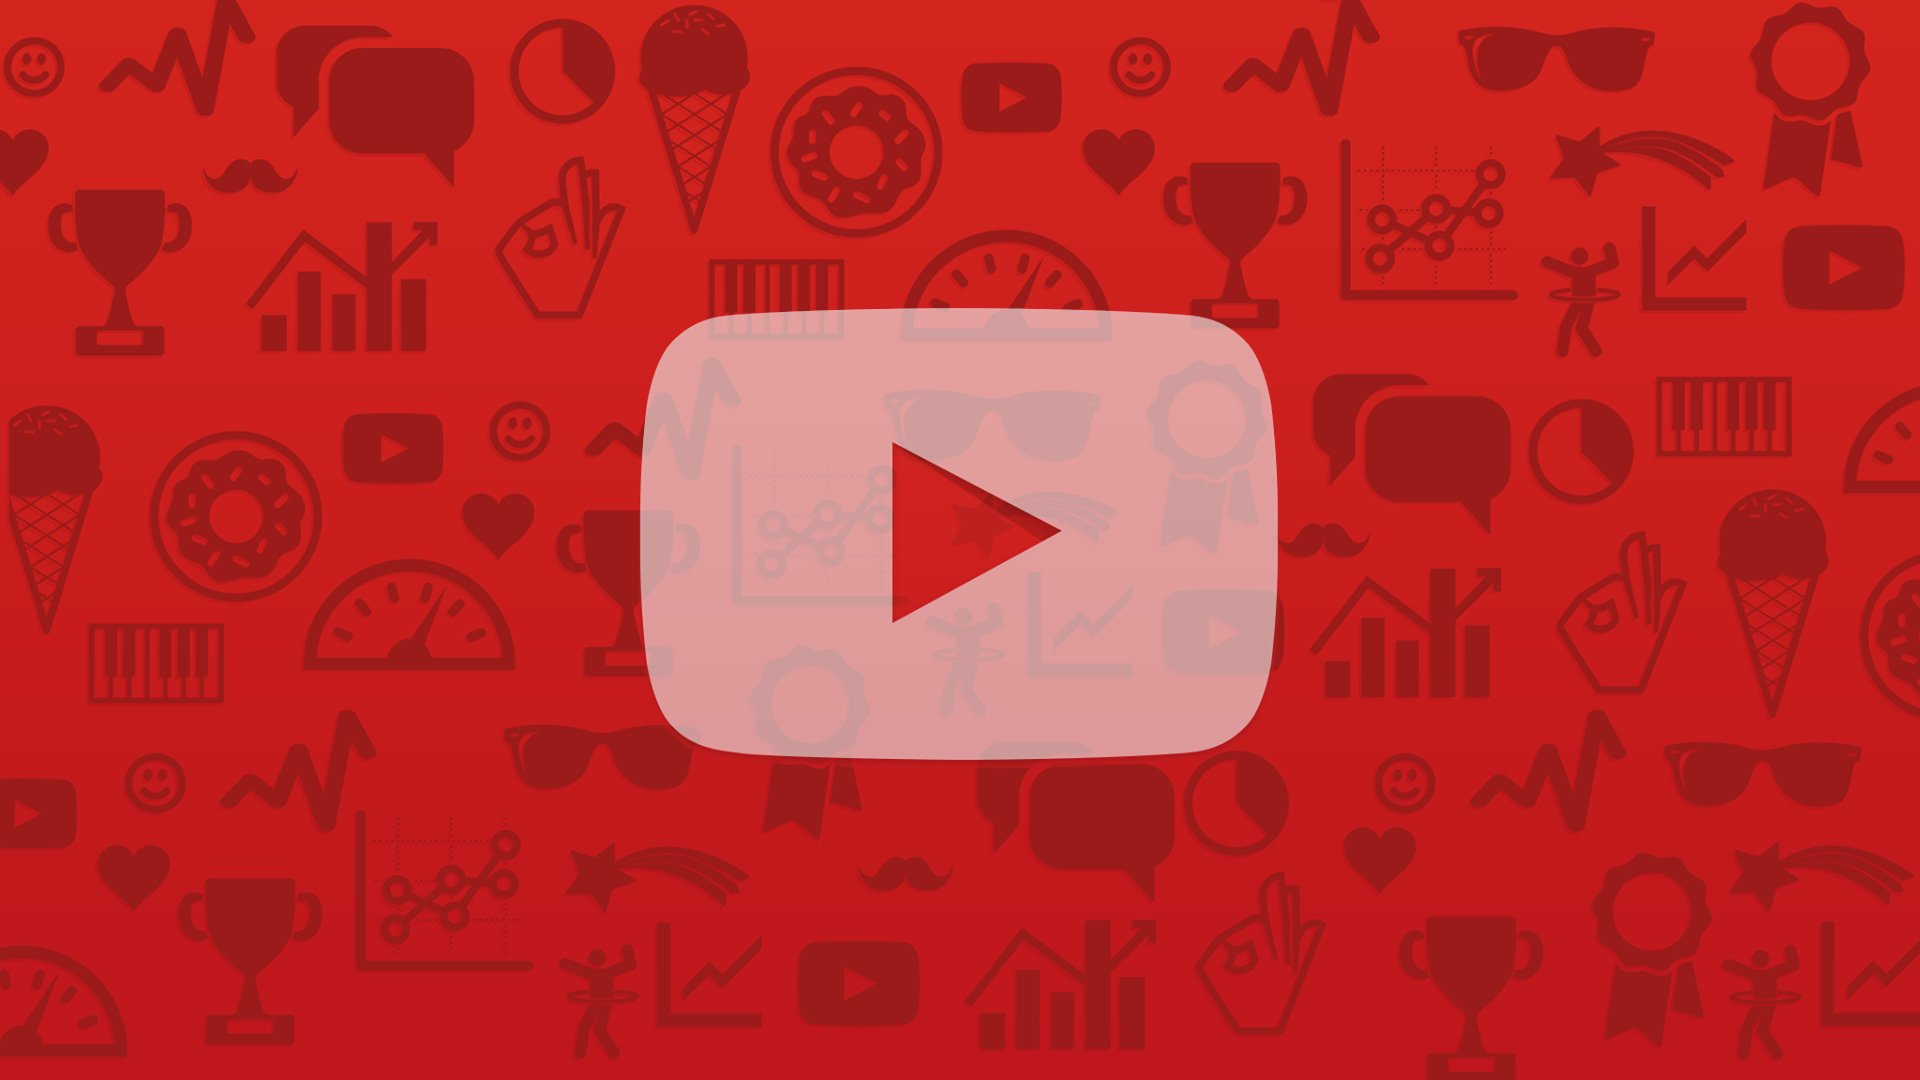 youtube computer hd background wallpaper 66872